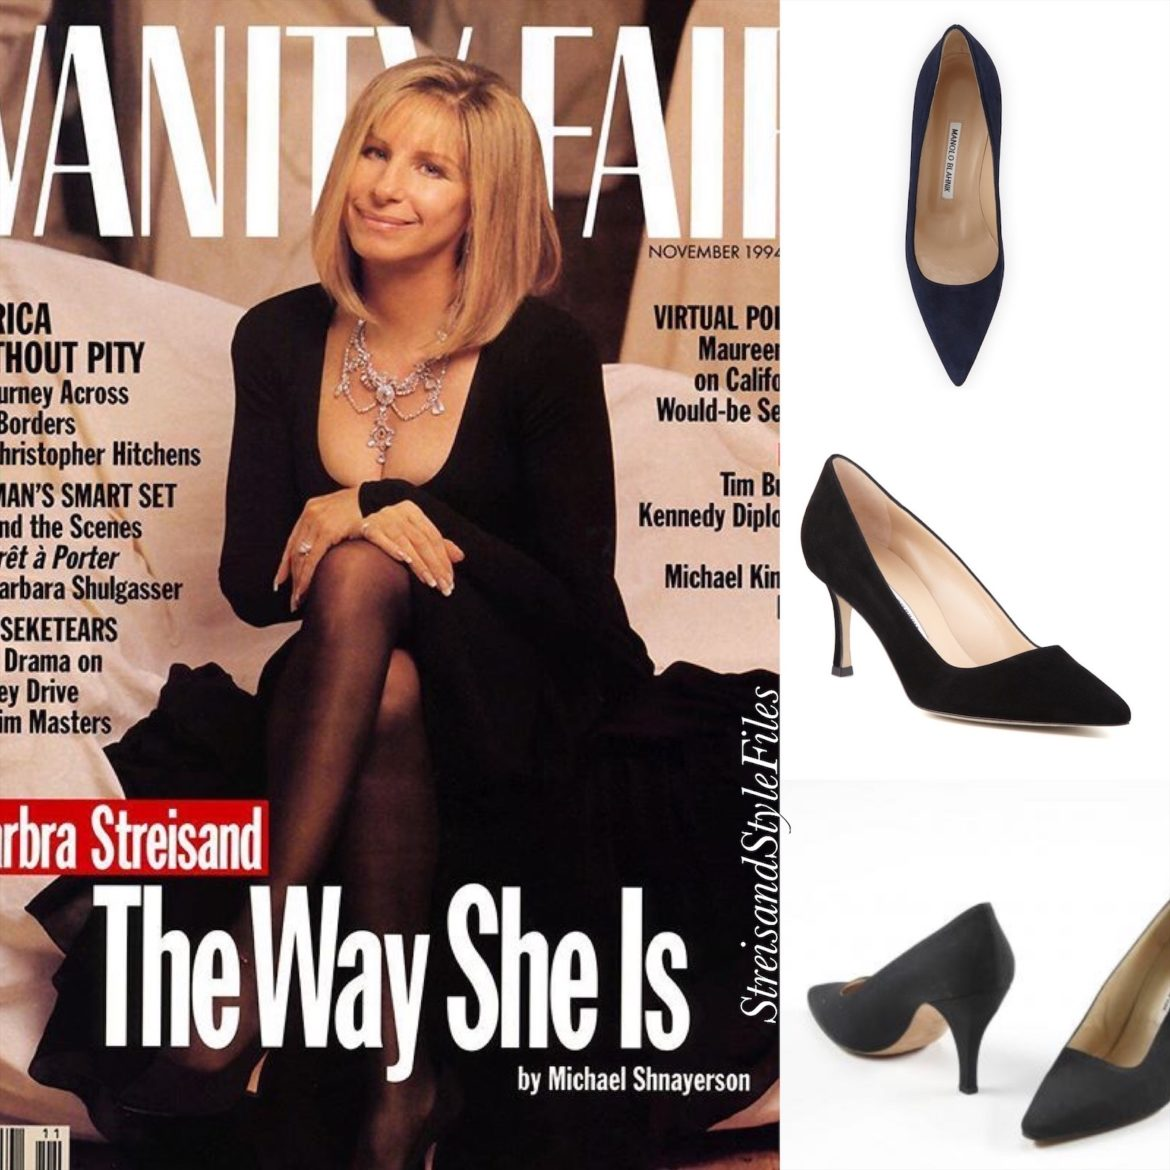 In Manolo Blahnik Pumps On The Cover Of November 1994's Vanity Fair.